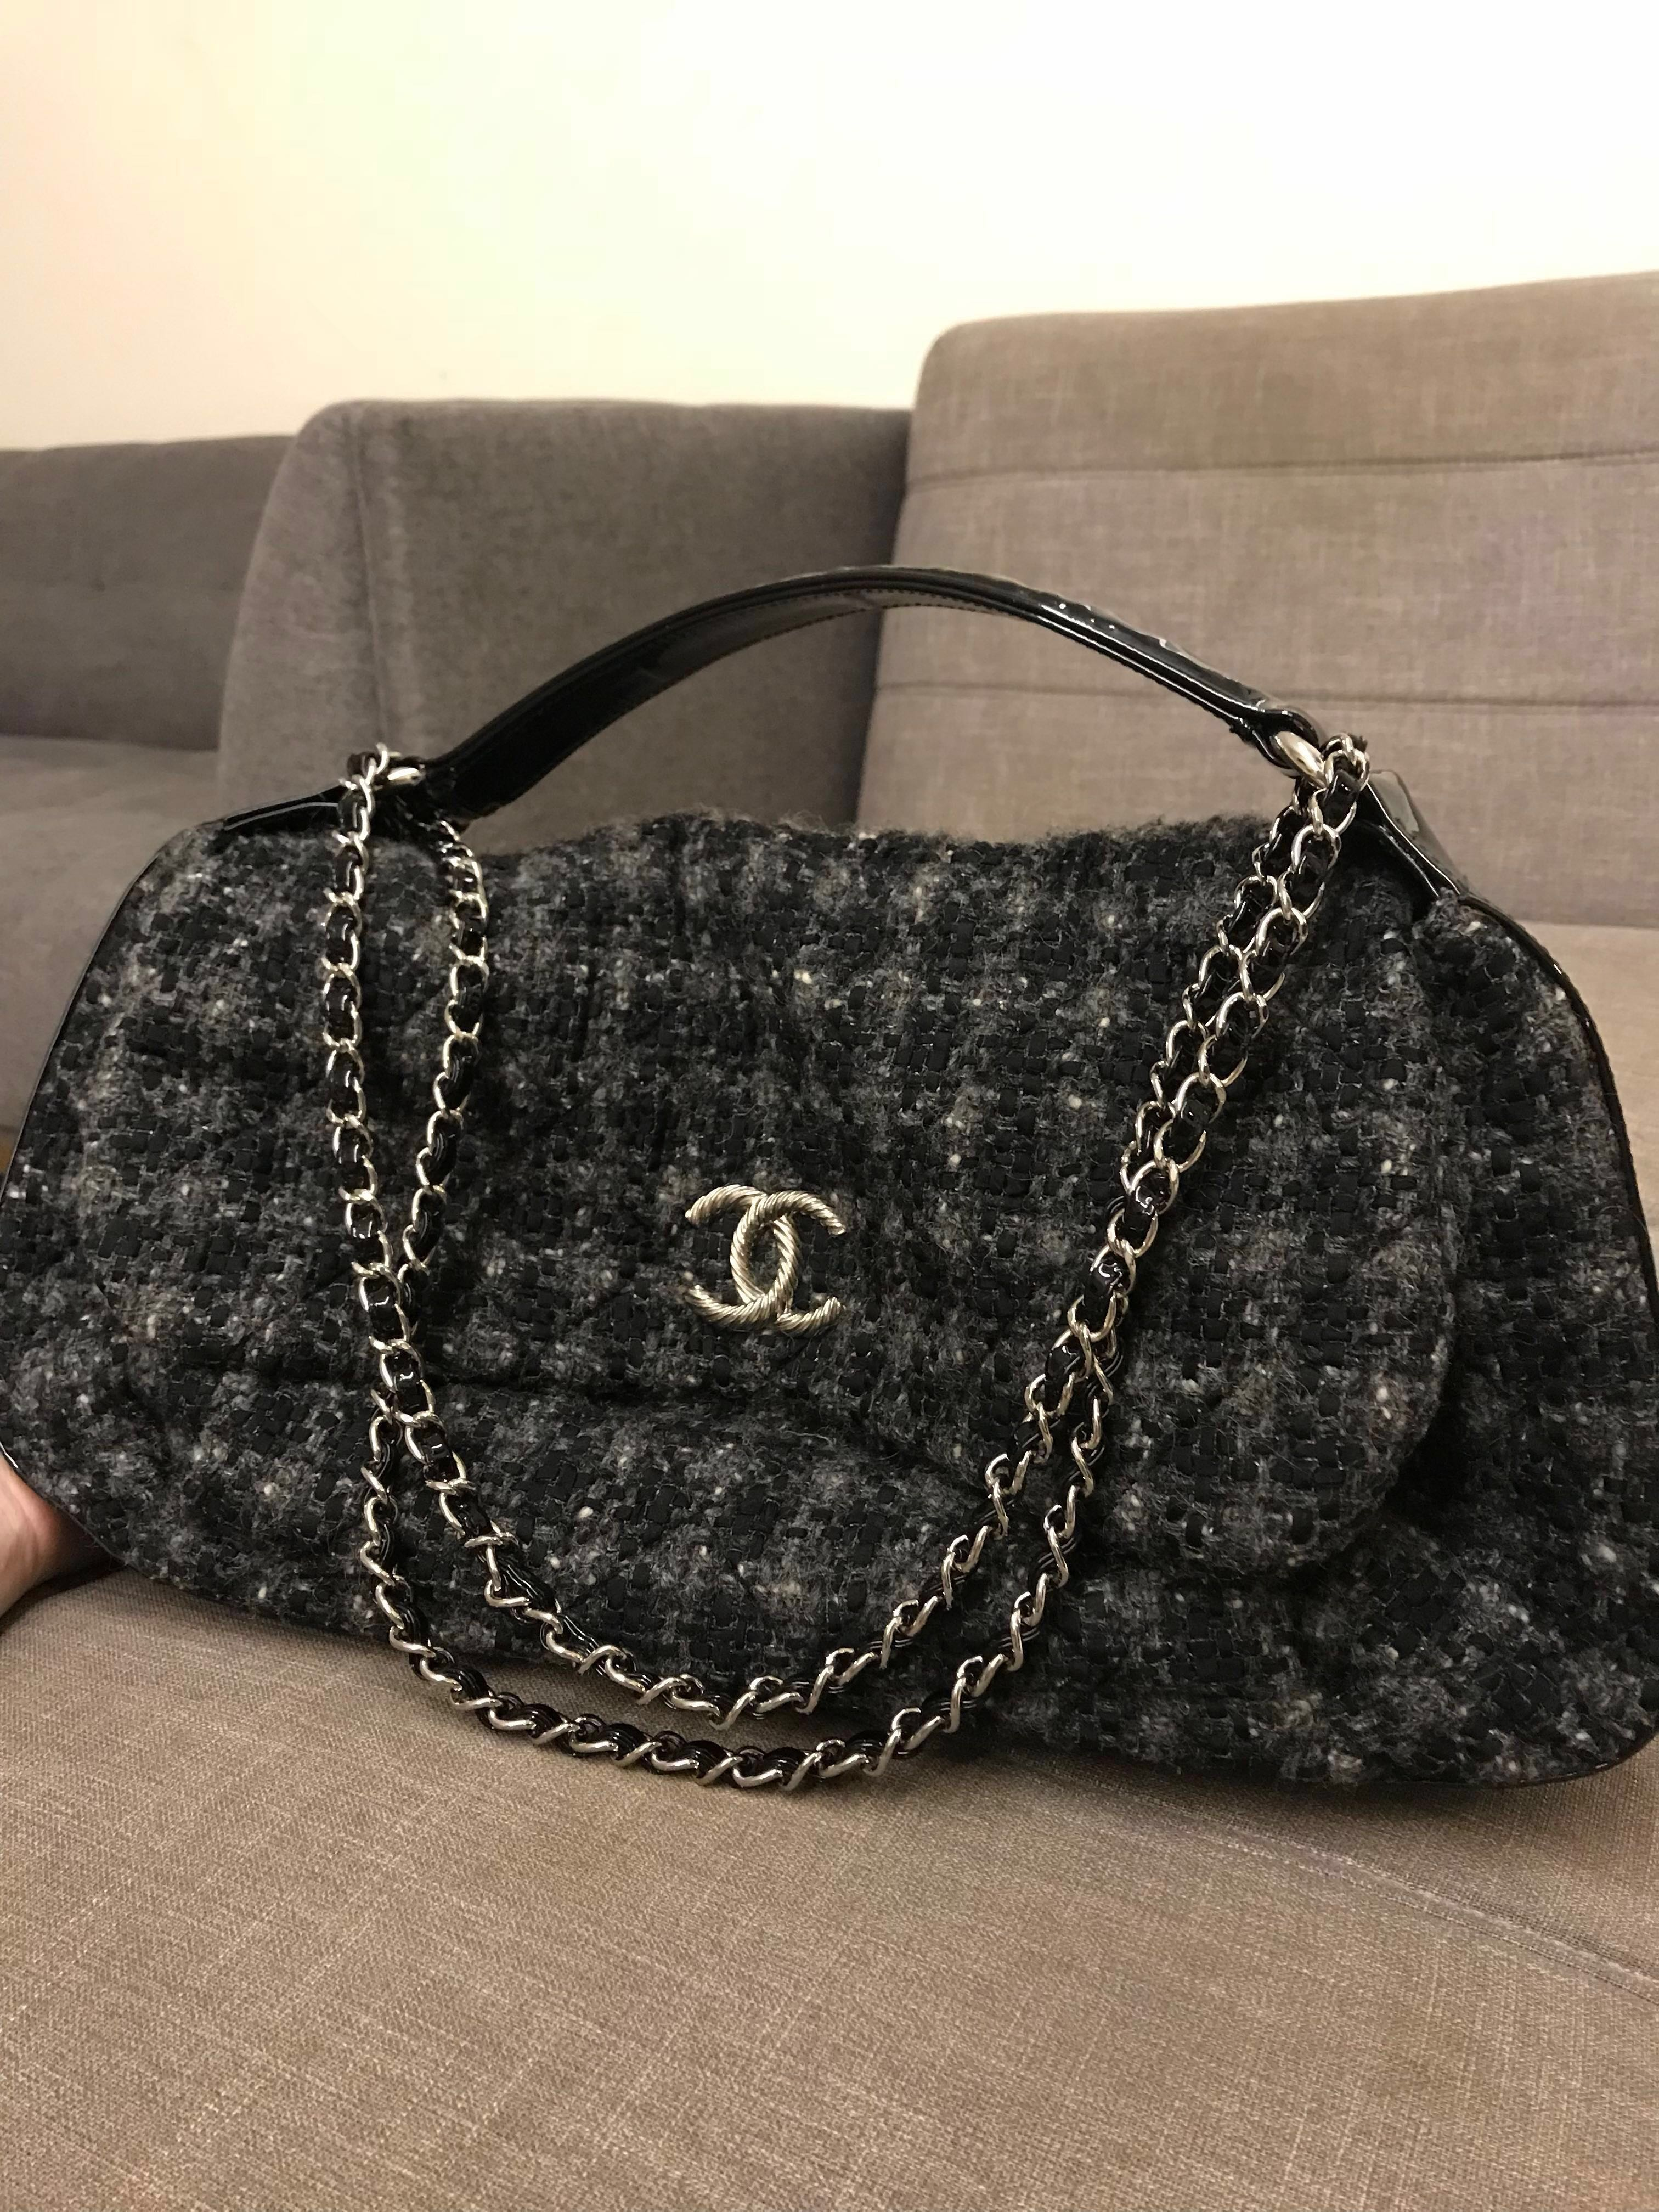 6a2db19d9ebd FREE CHANEL Bag Charm with Tweed Hobo, Women's Fashion, Bags & Wallets,  Handbags on Carousell